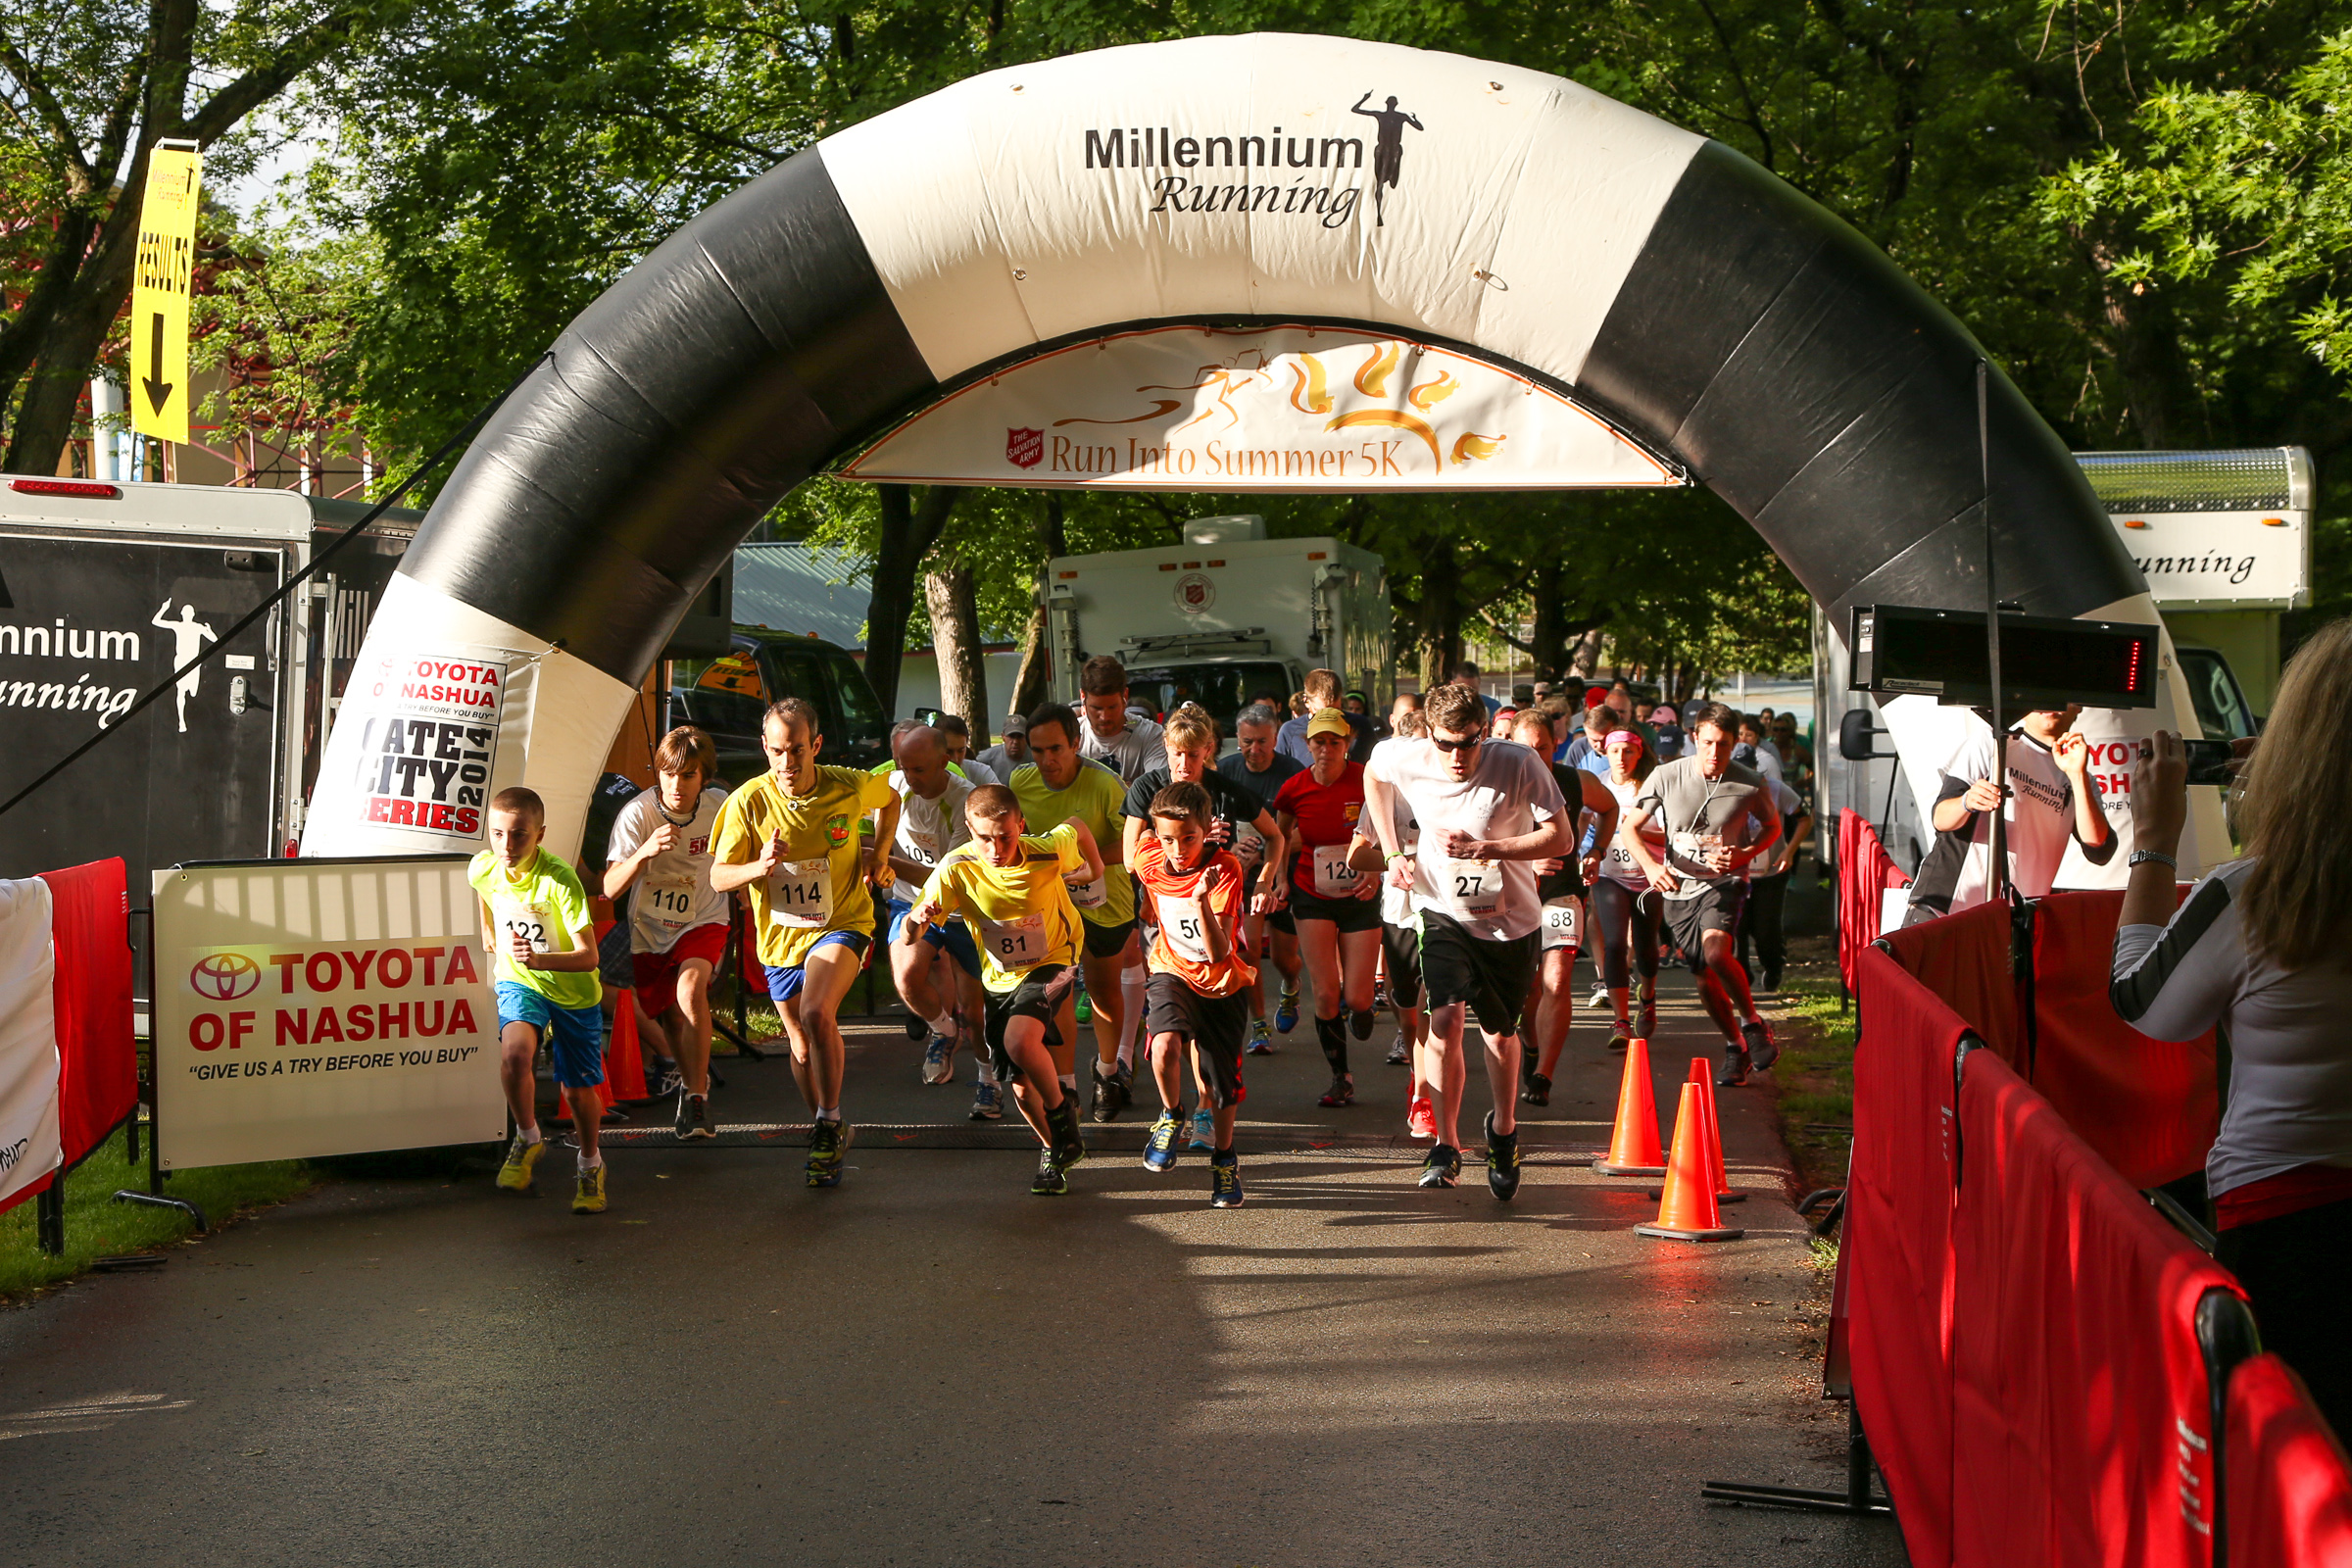 PHOTOS: Run Into Summer 2014